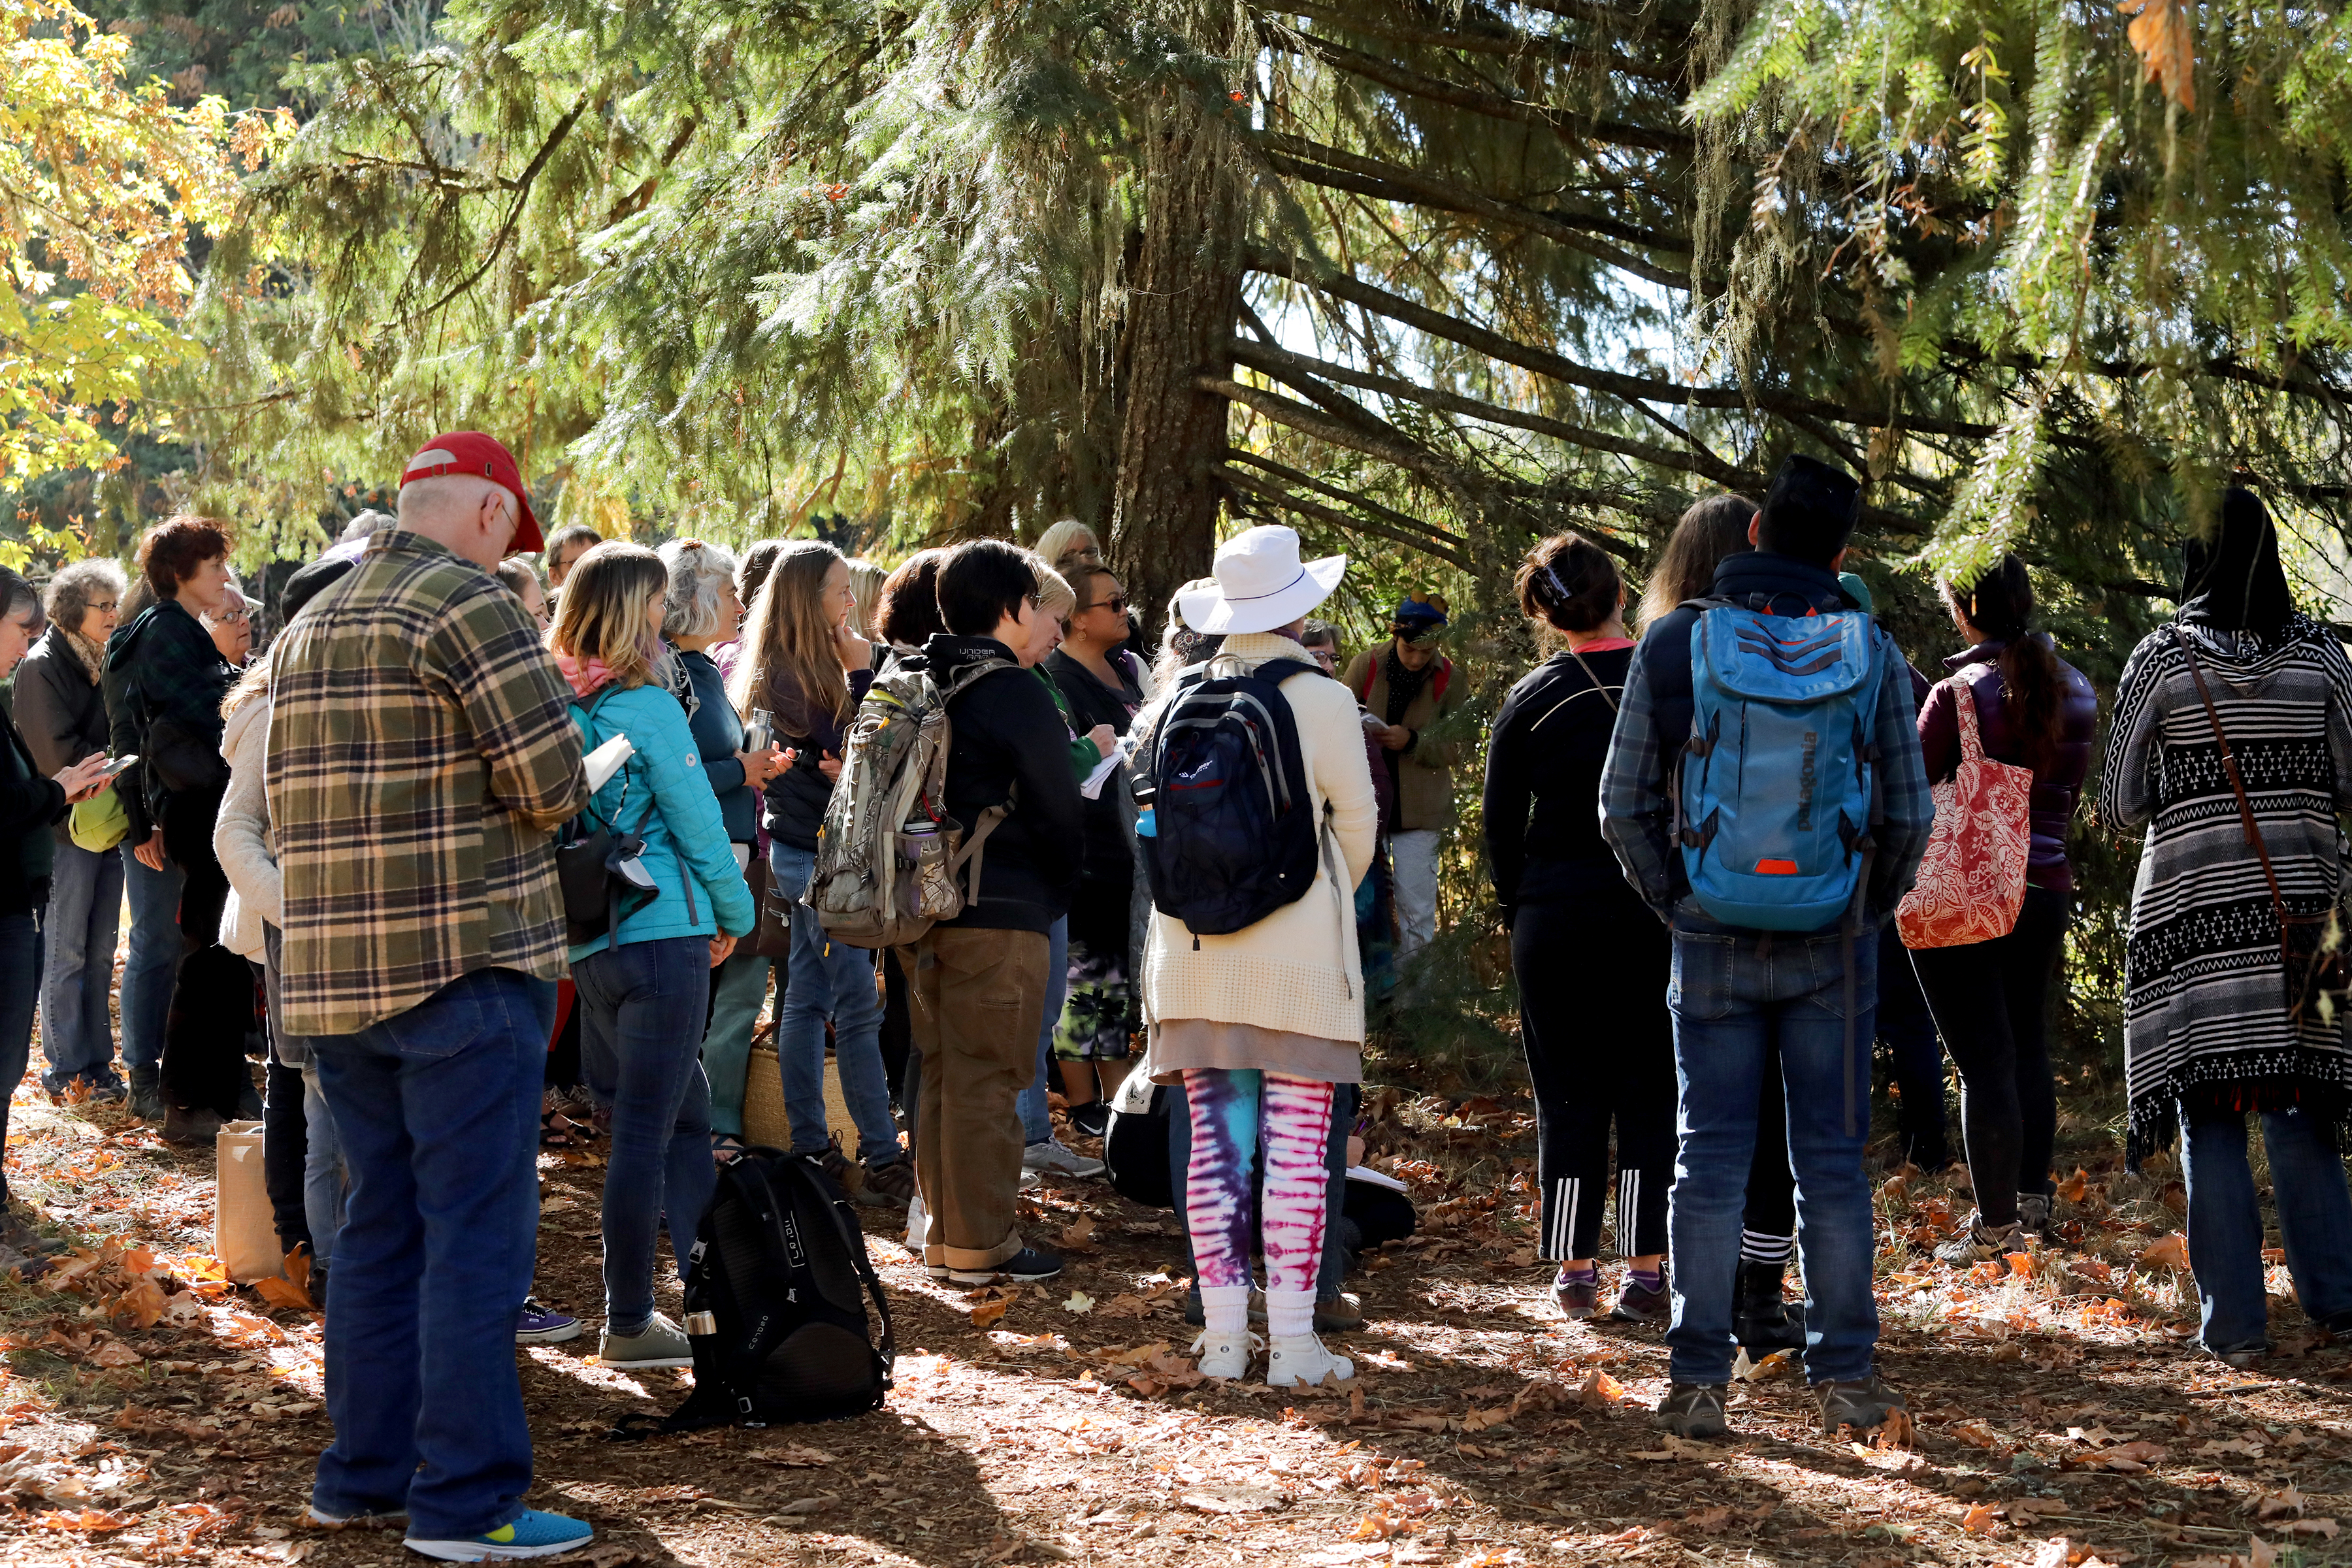 Group of people on guided interpretive nature walk in autumn setting.